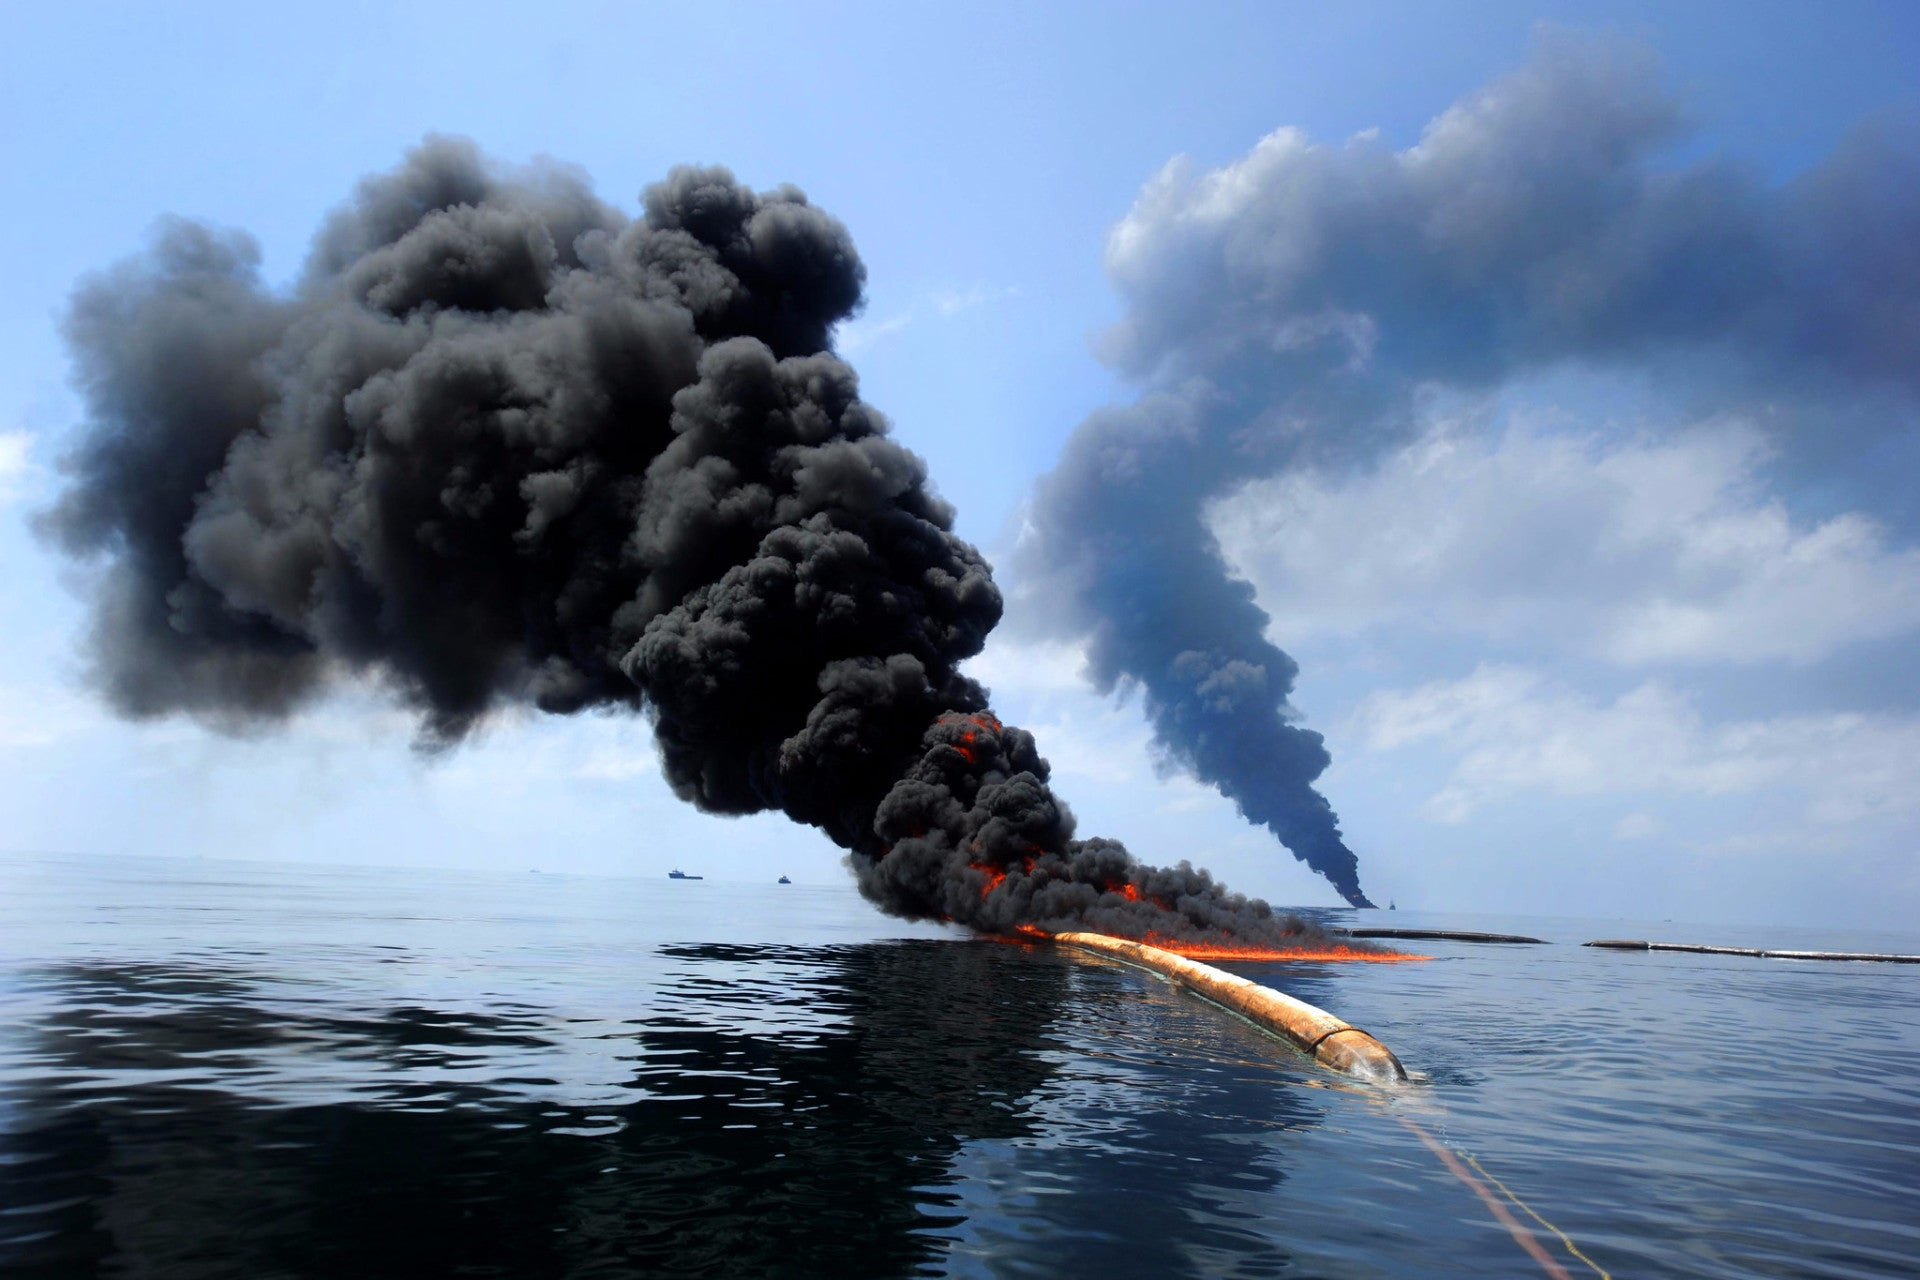 Deepwater Horizon explosion from Ecocide documentary